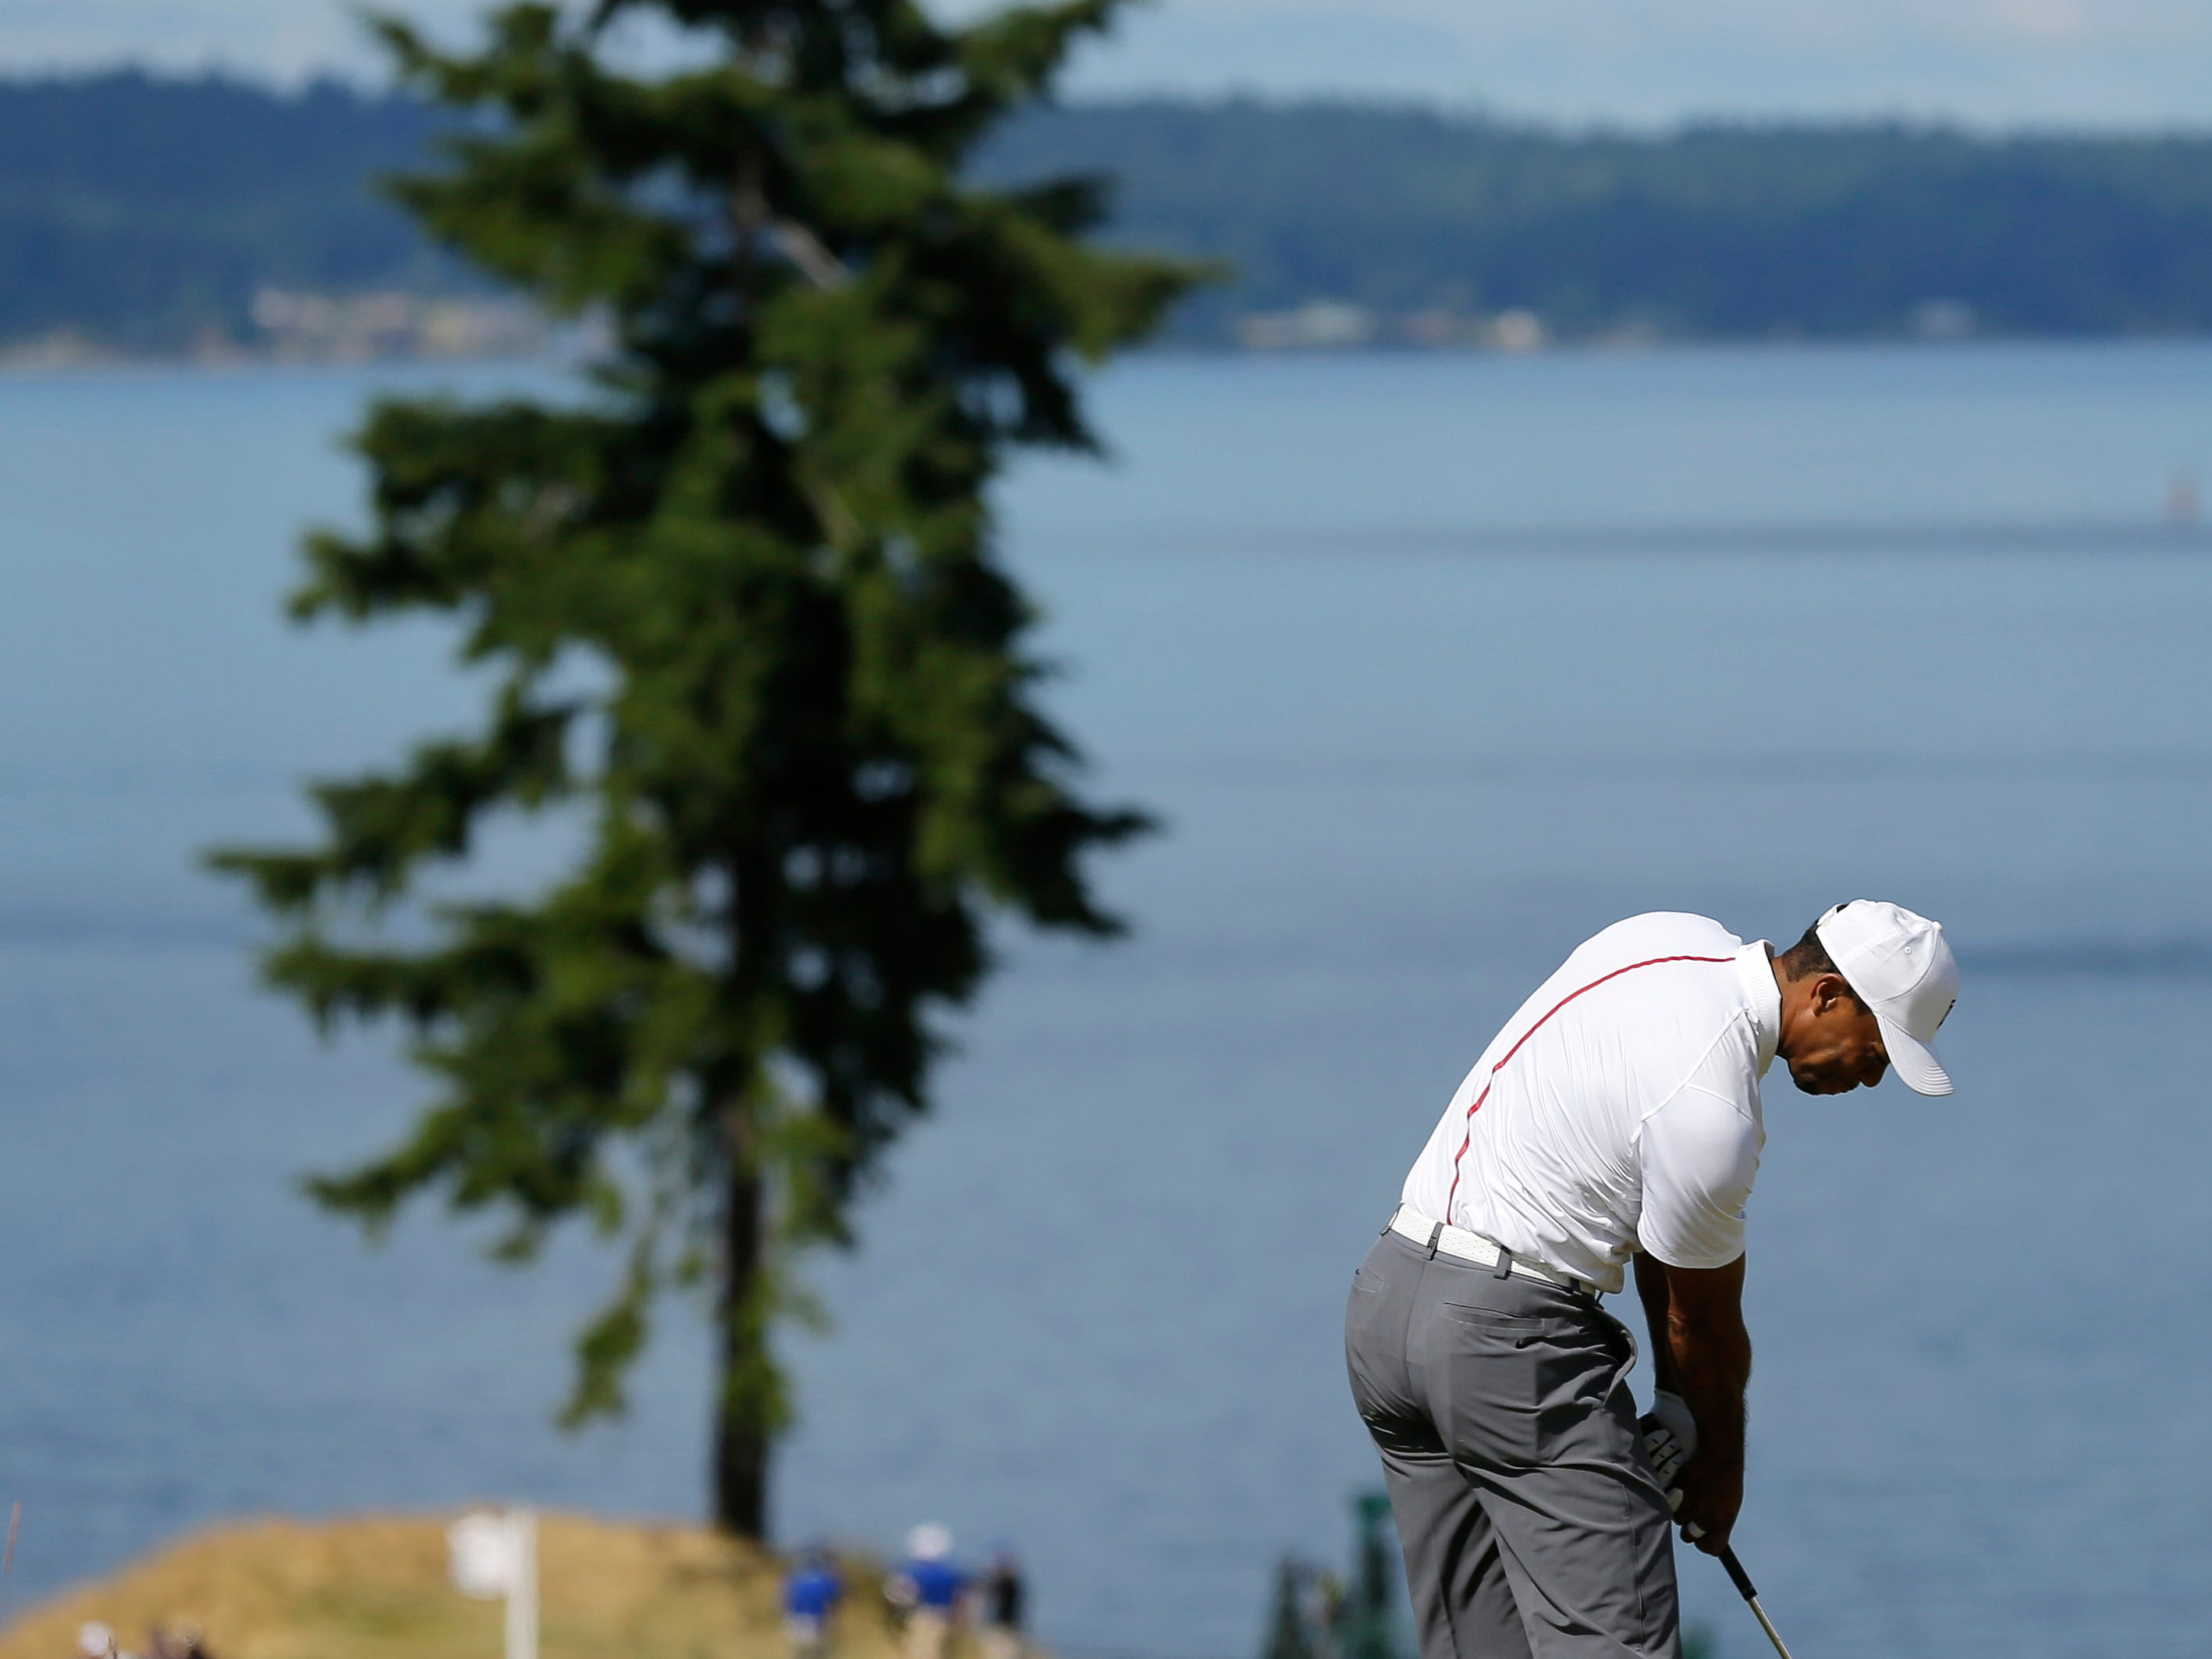 Tiger Woods hits to the 15th hole during the second round of the U.S. Open golf tournament at Chambers Bay on Friday, June 19, 2015 in University Place, Wash. (AP Photo/Ted S. Warren)